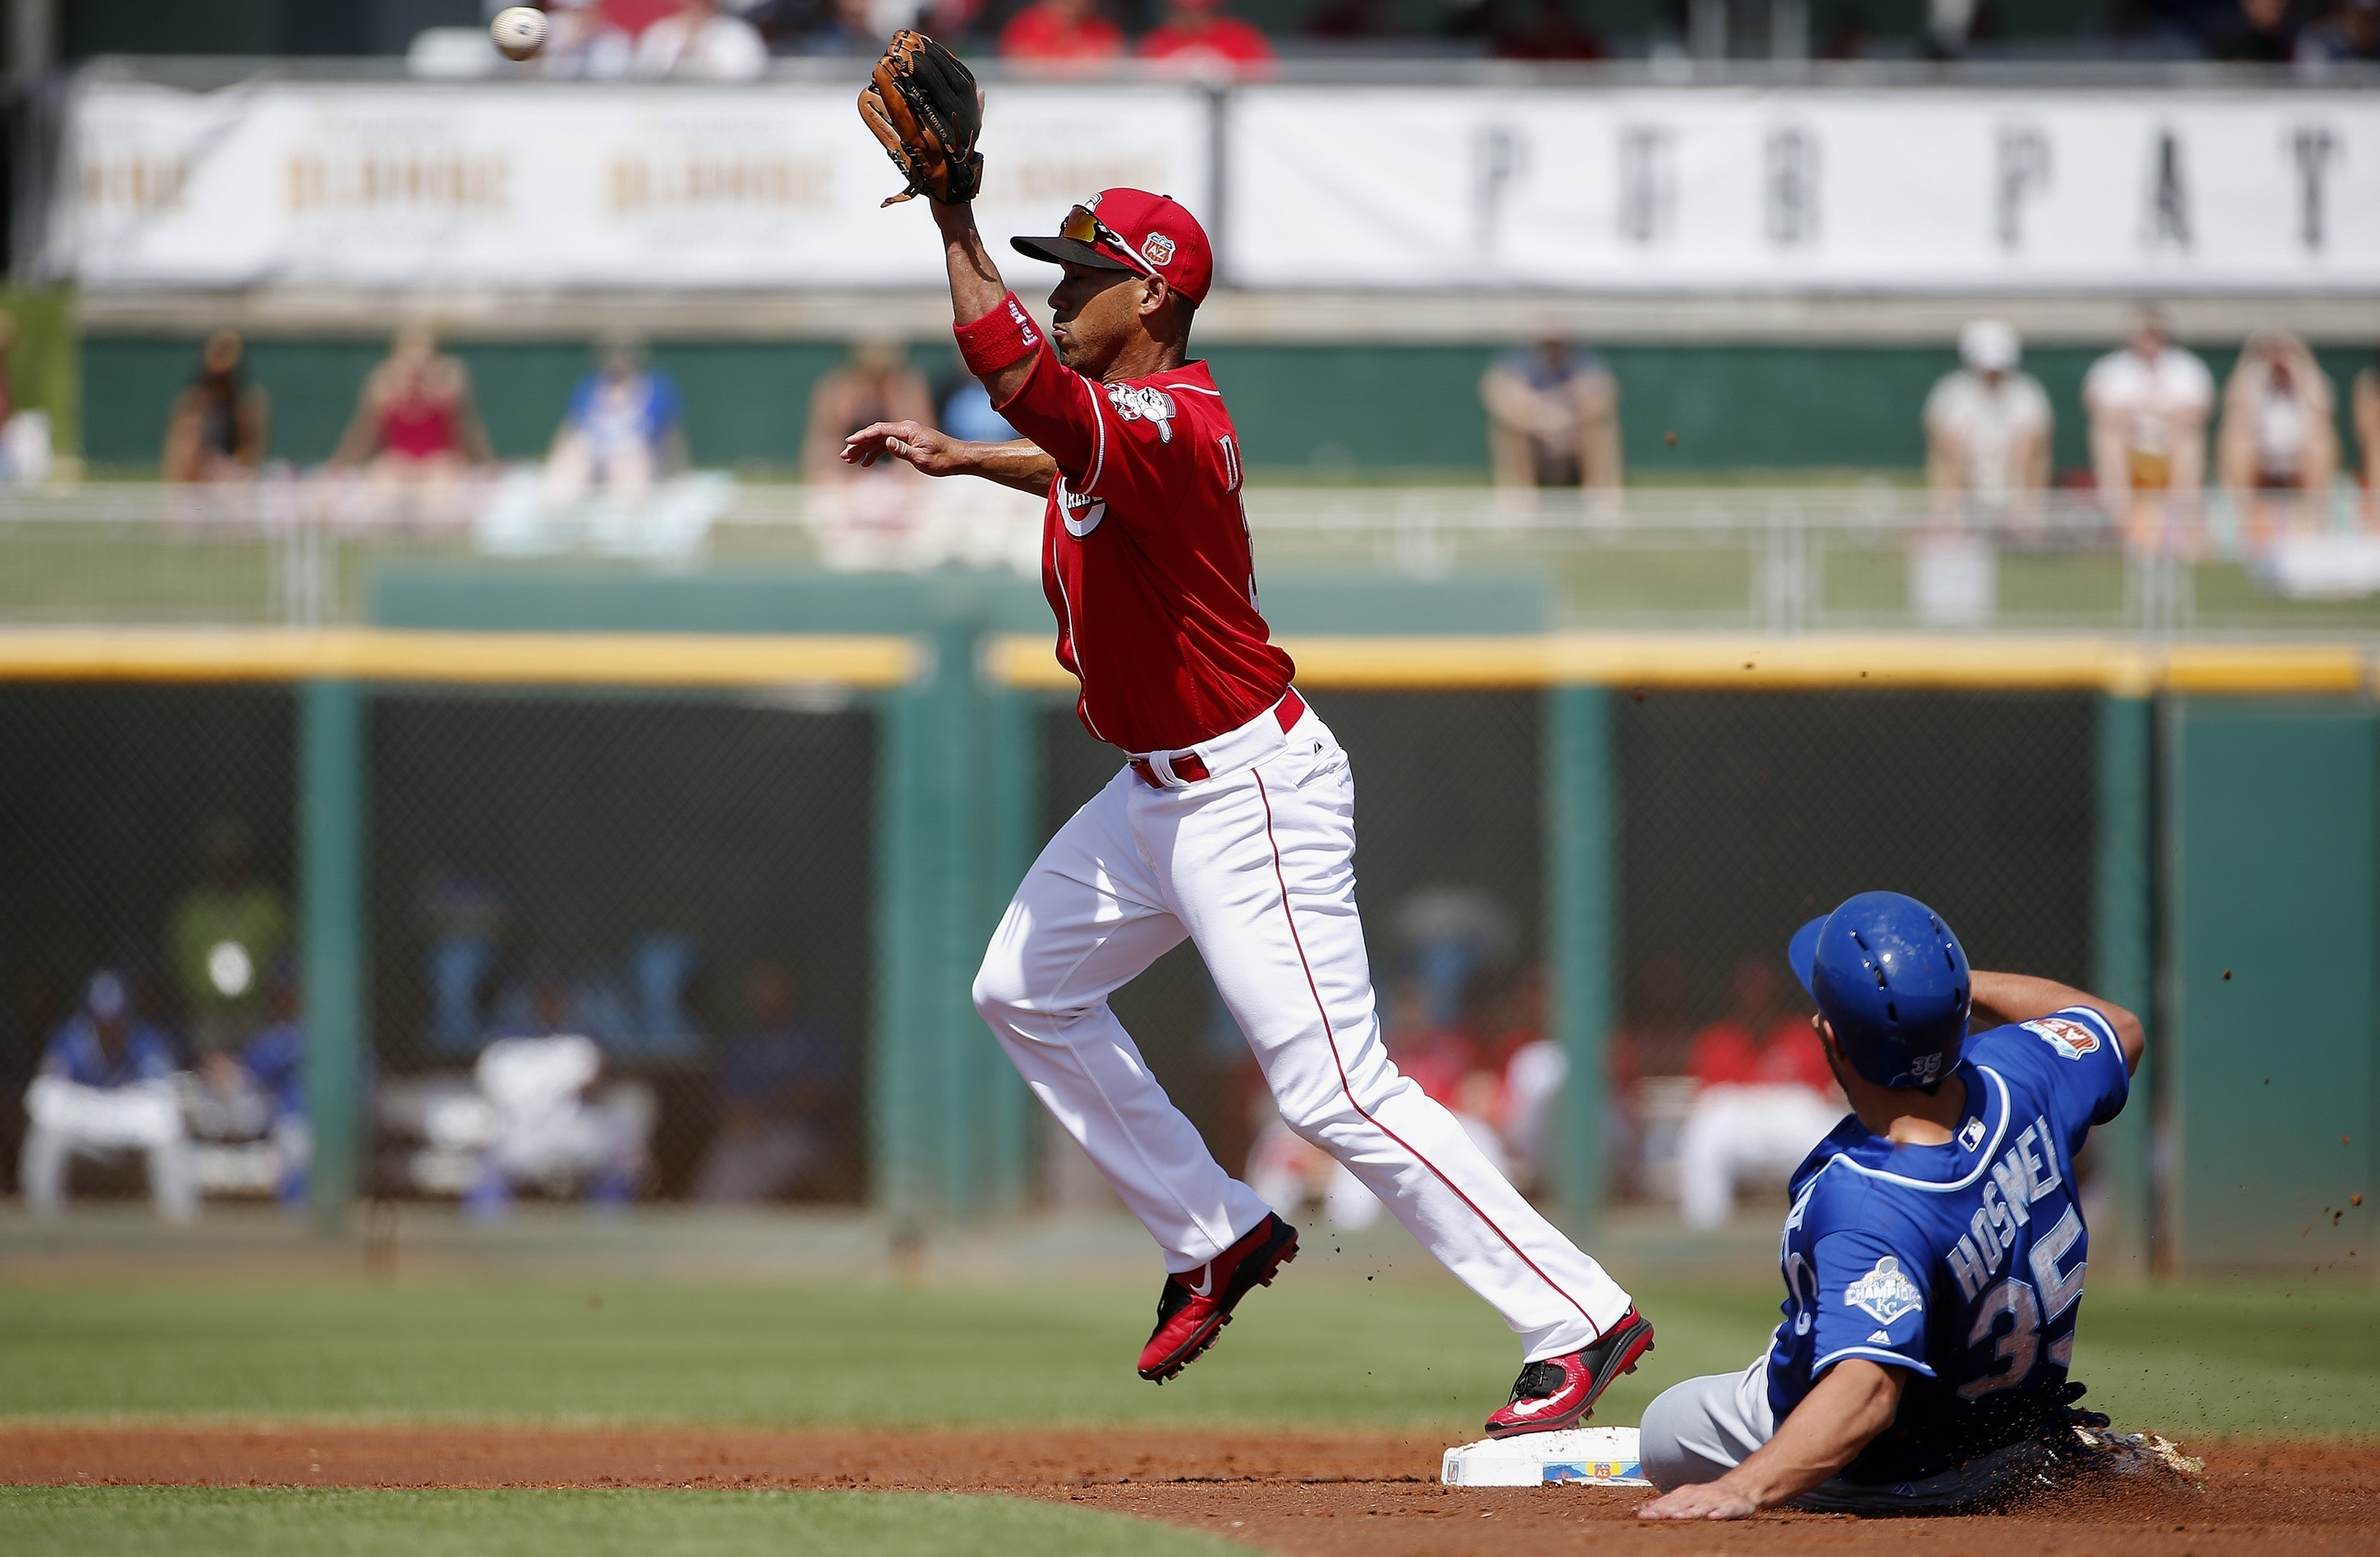 Cincinnati Reds' Ivan De Jesus, left, reaches out to make a catch to force out Kansas City Royals' Eric Hosmer (35) at second base during the first inning of a spring training baseball game, Tuesday, March 15, 2016, in Goodyear, Ariz. (AP Photo/Ross D. Fr